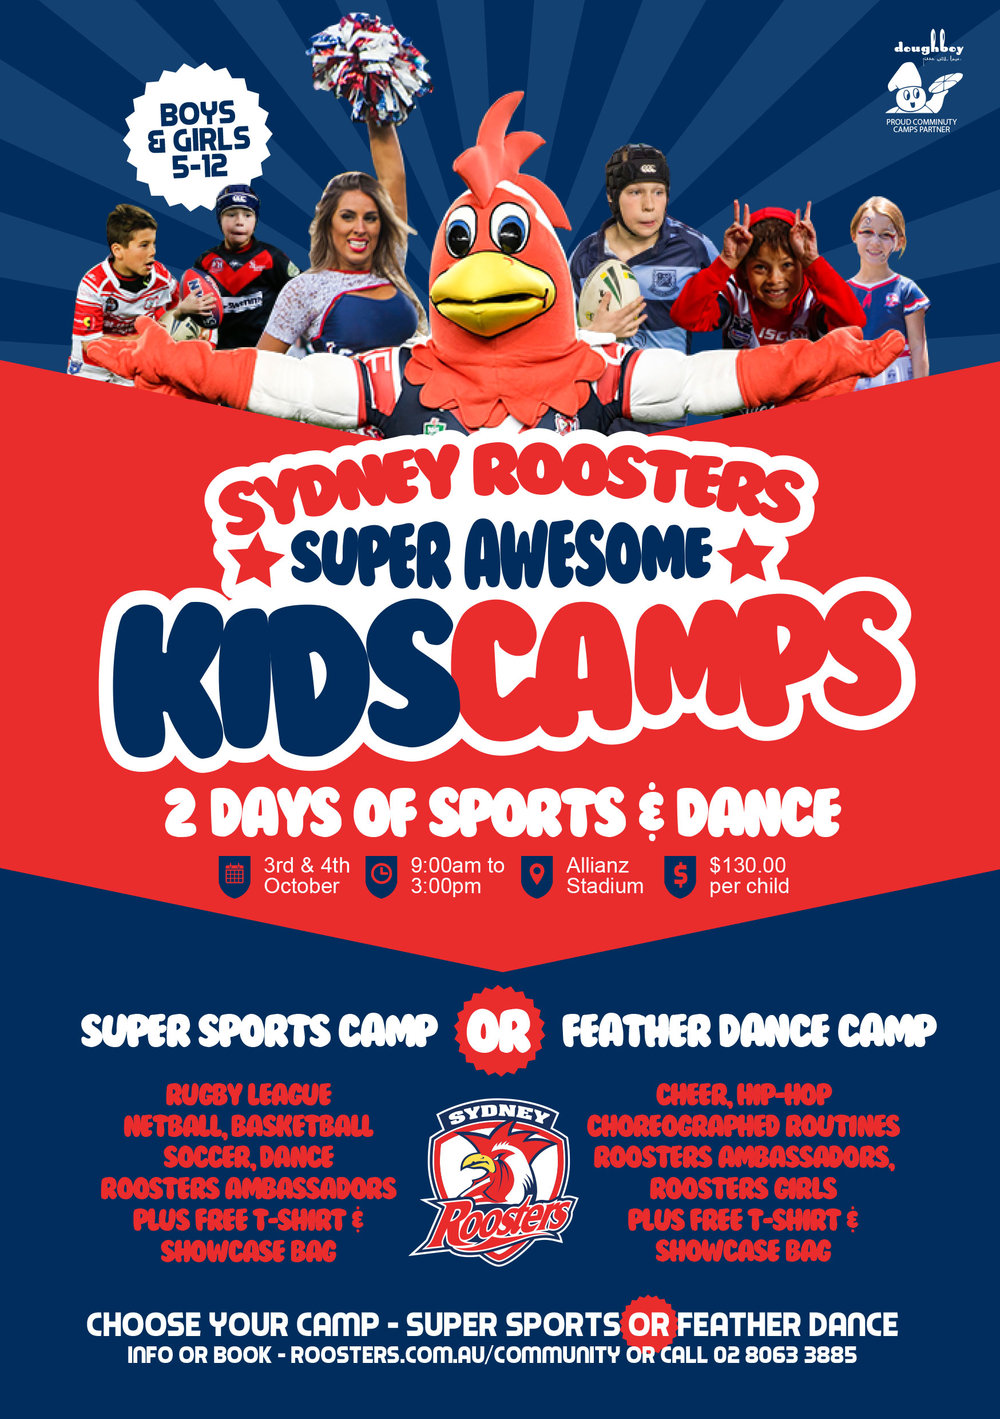 Roosters-Super-Sport-Camp-Flyer-Allianz.jpg